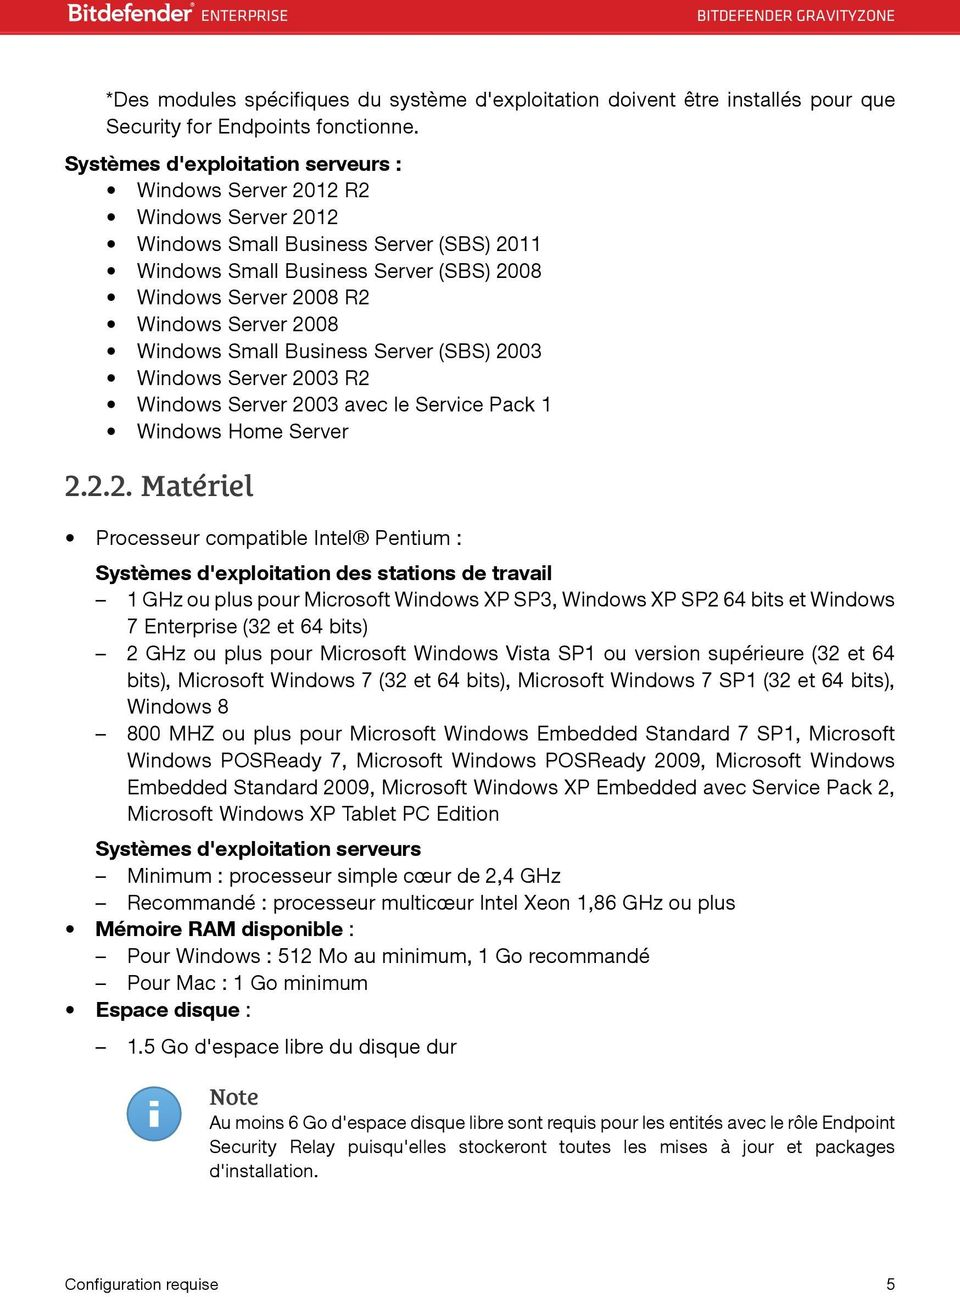 2008 Windows Small Business Server (SBS) 2003 Windows Server 2003 R2 Windows Server 2003 avec le Service Pack 1 Windows Home Server 2.2.2. Matériel Processeur compatible Intel Pentium : Systèmes